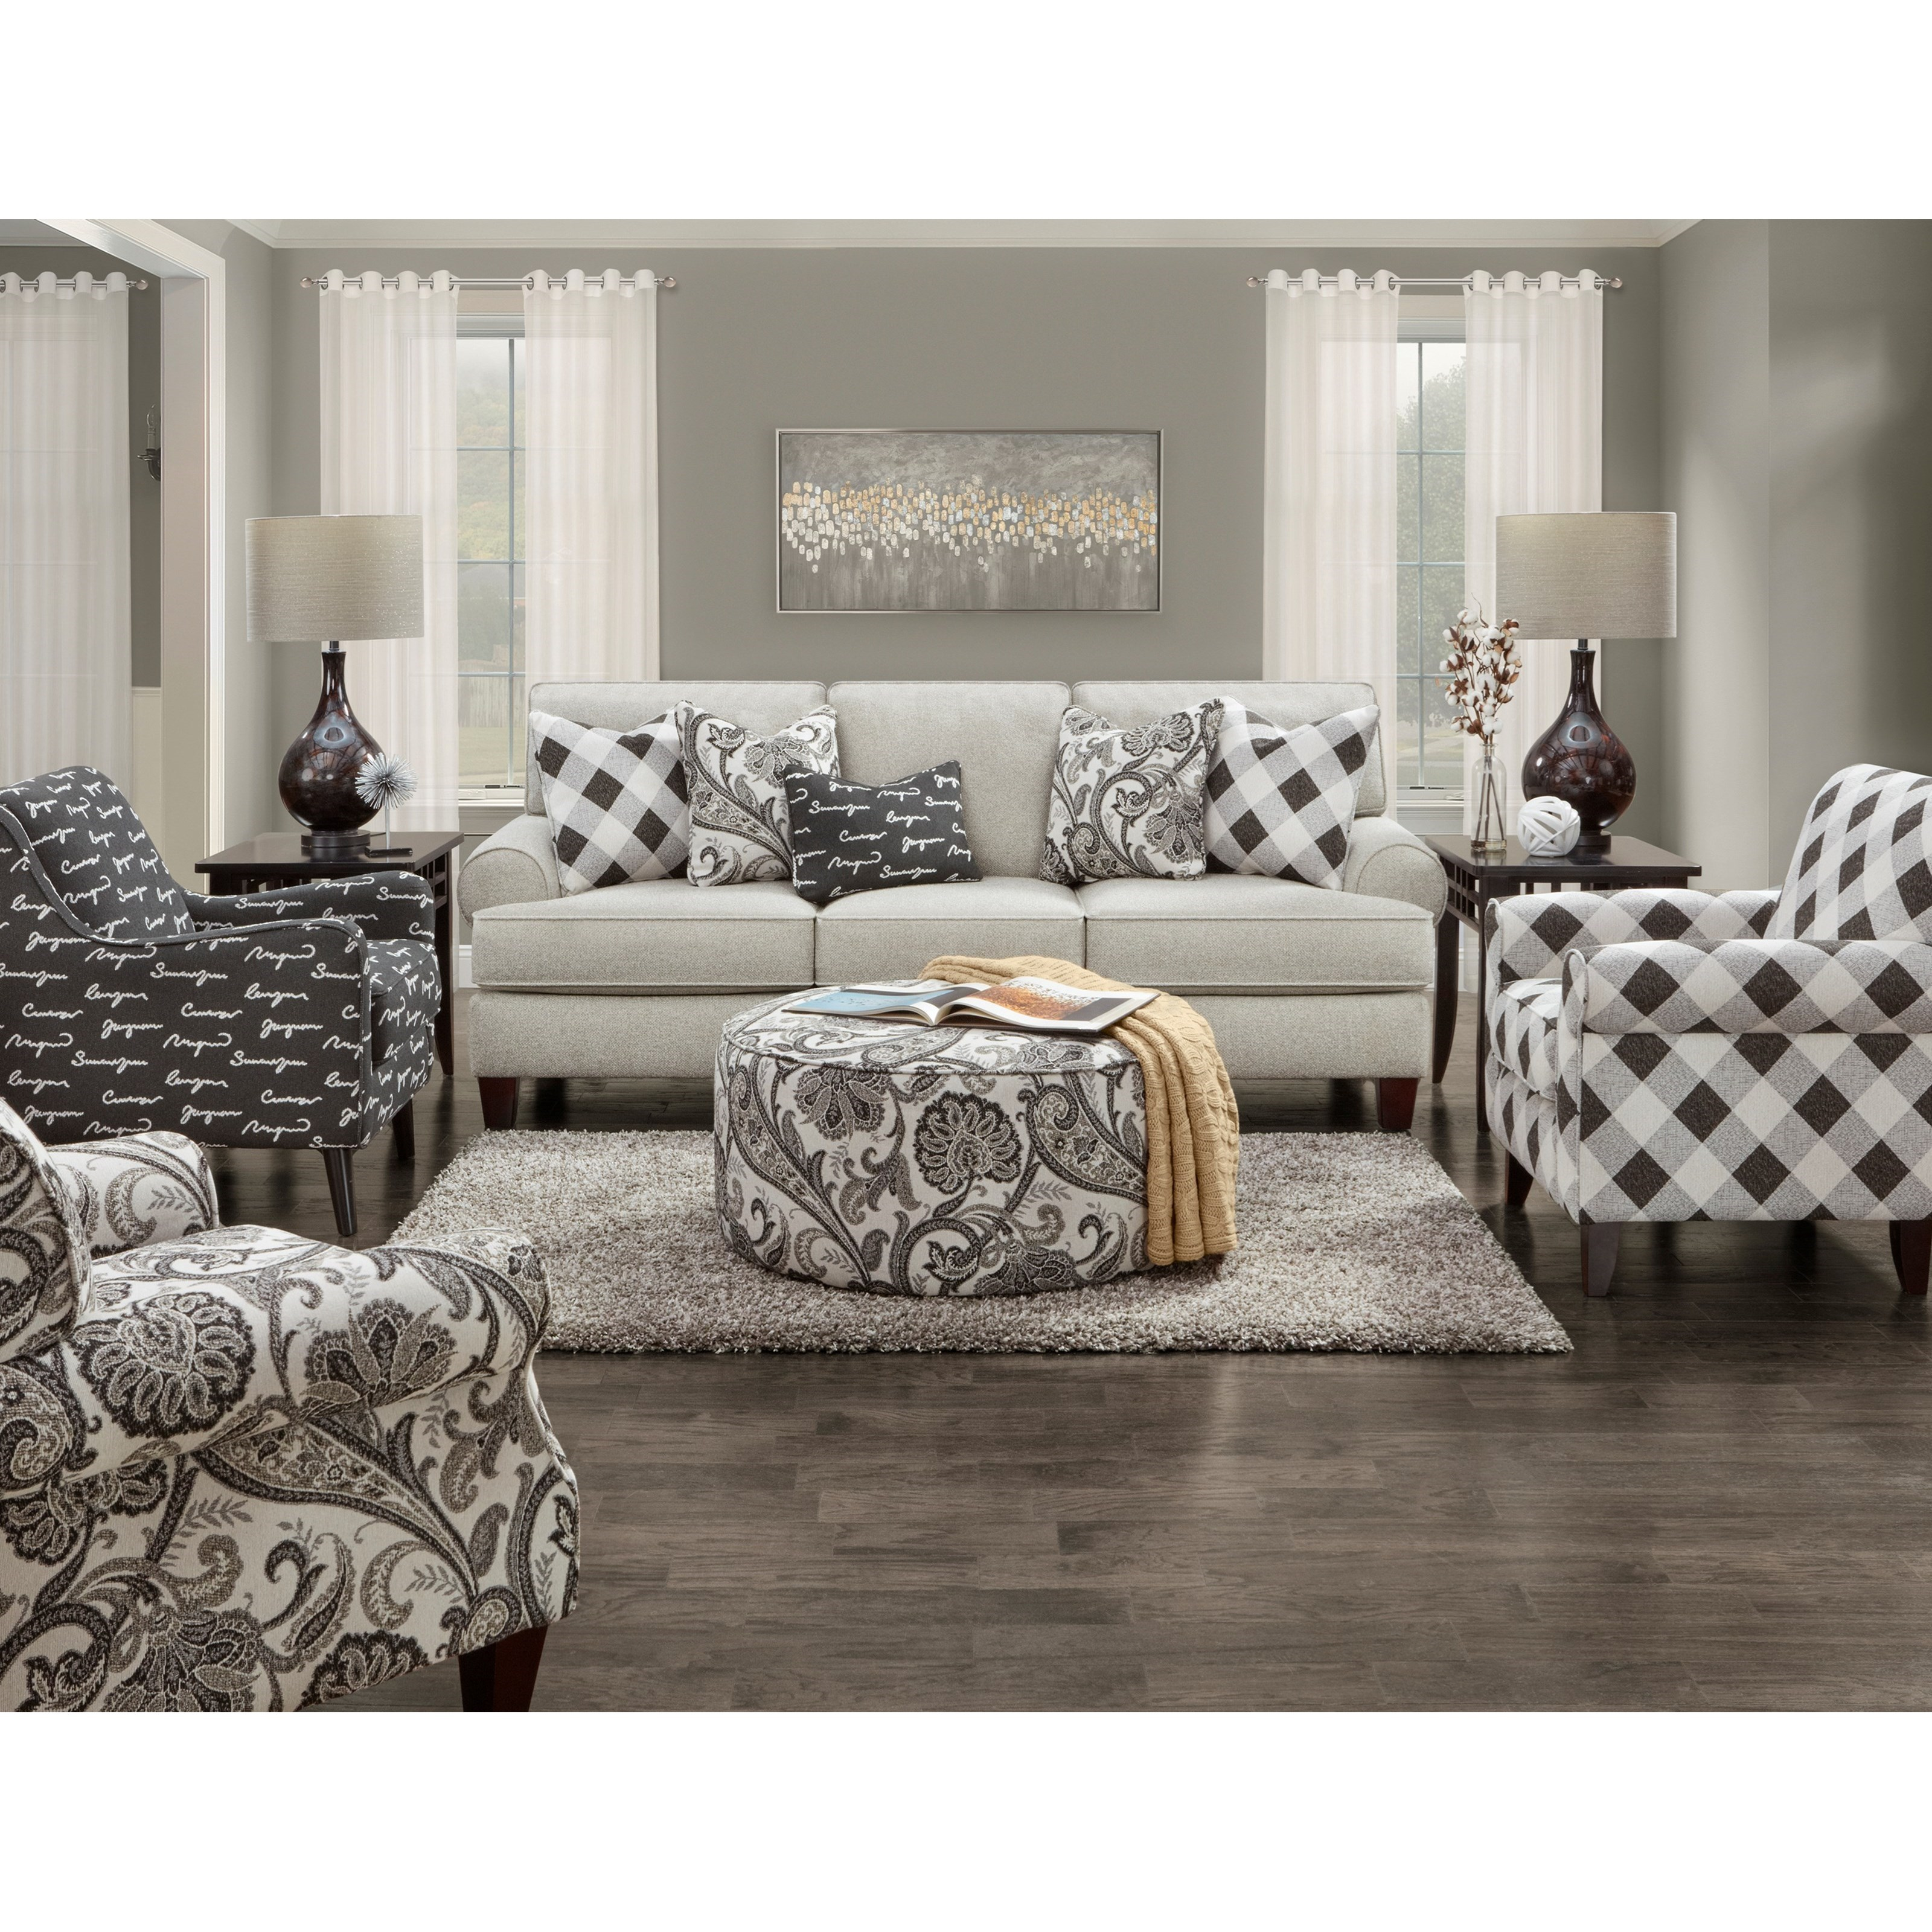 4200 Stationary Living Room Group by FN at Lindy's Furniture Company